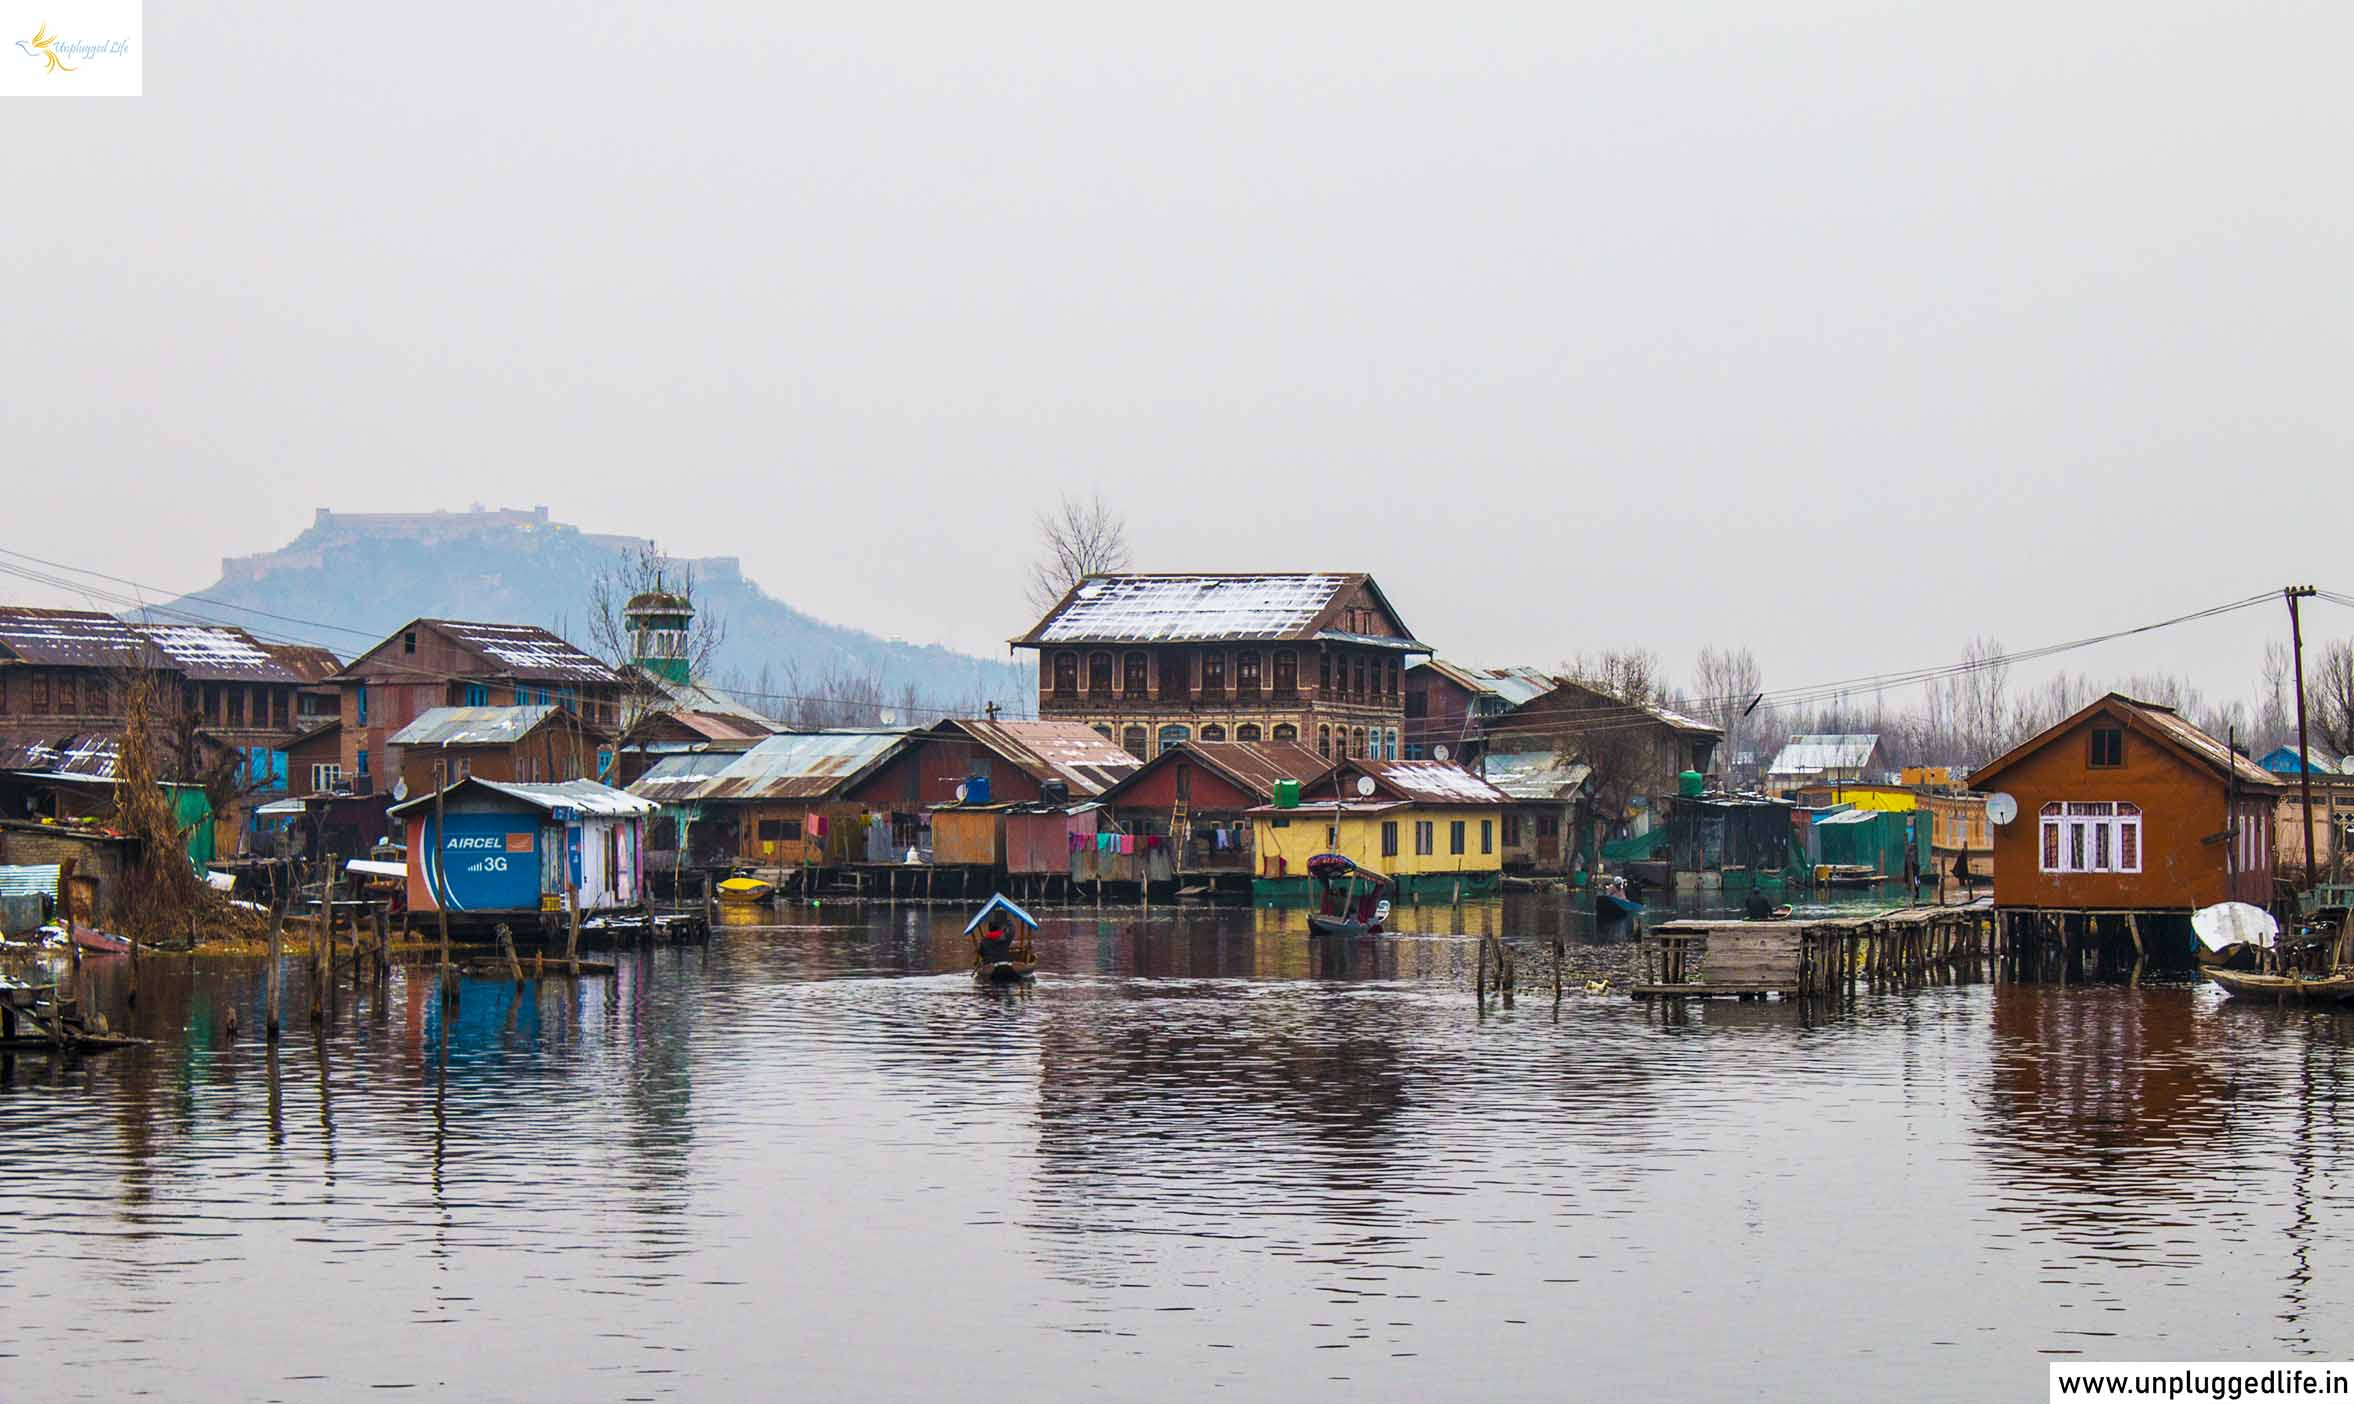 Explore Srinagar, Discover Srinagar, Top things to do in Srinagar, Shikara Ride, Shikara in Srinagar, top sights in Srinagar, Kashmir, Kashmir India, Jammu and Kashmir, Sightseeing in Srinagar, Boat ride, things to do in Kashmir, Things to do in Srinagar, Things to do in Jammu and Kashmir, Ladakh, Unplugged Life, Srinagar to Leh, Srinagar to Leh by Road, Srinagar to Kargil by Road, Kargil to Leh by Road, Leh to Srinagar highway, Srinagar to Lamayuru, Srinagar to Leh Ladakh, Landscape in Ladakh, Landscape, Mountains